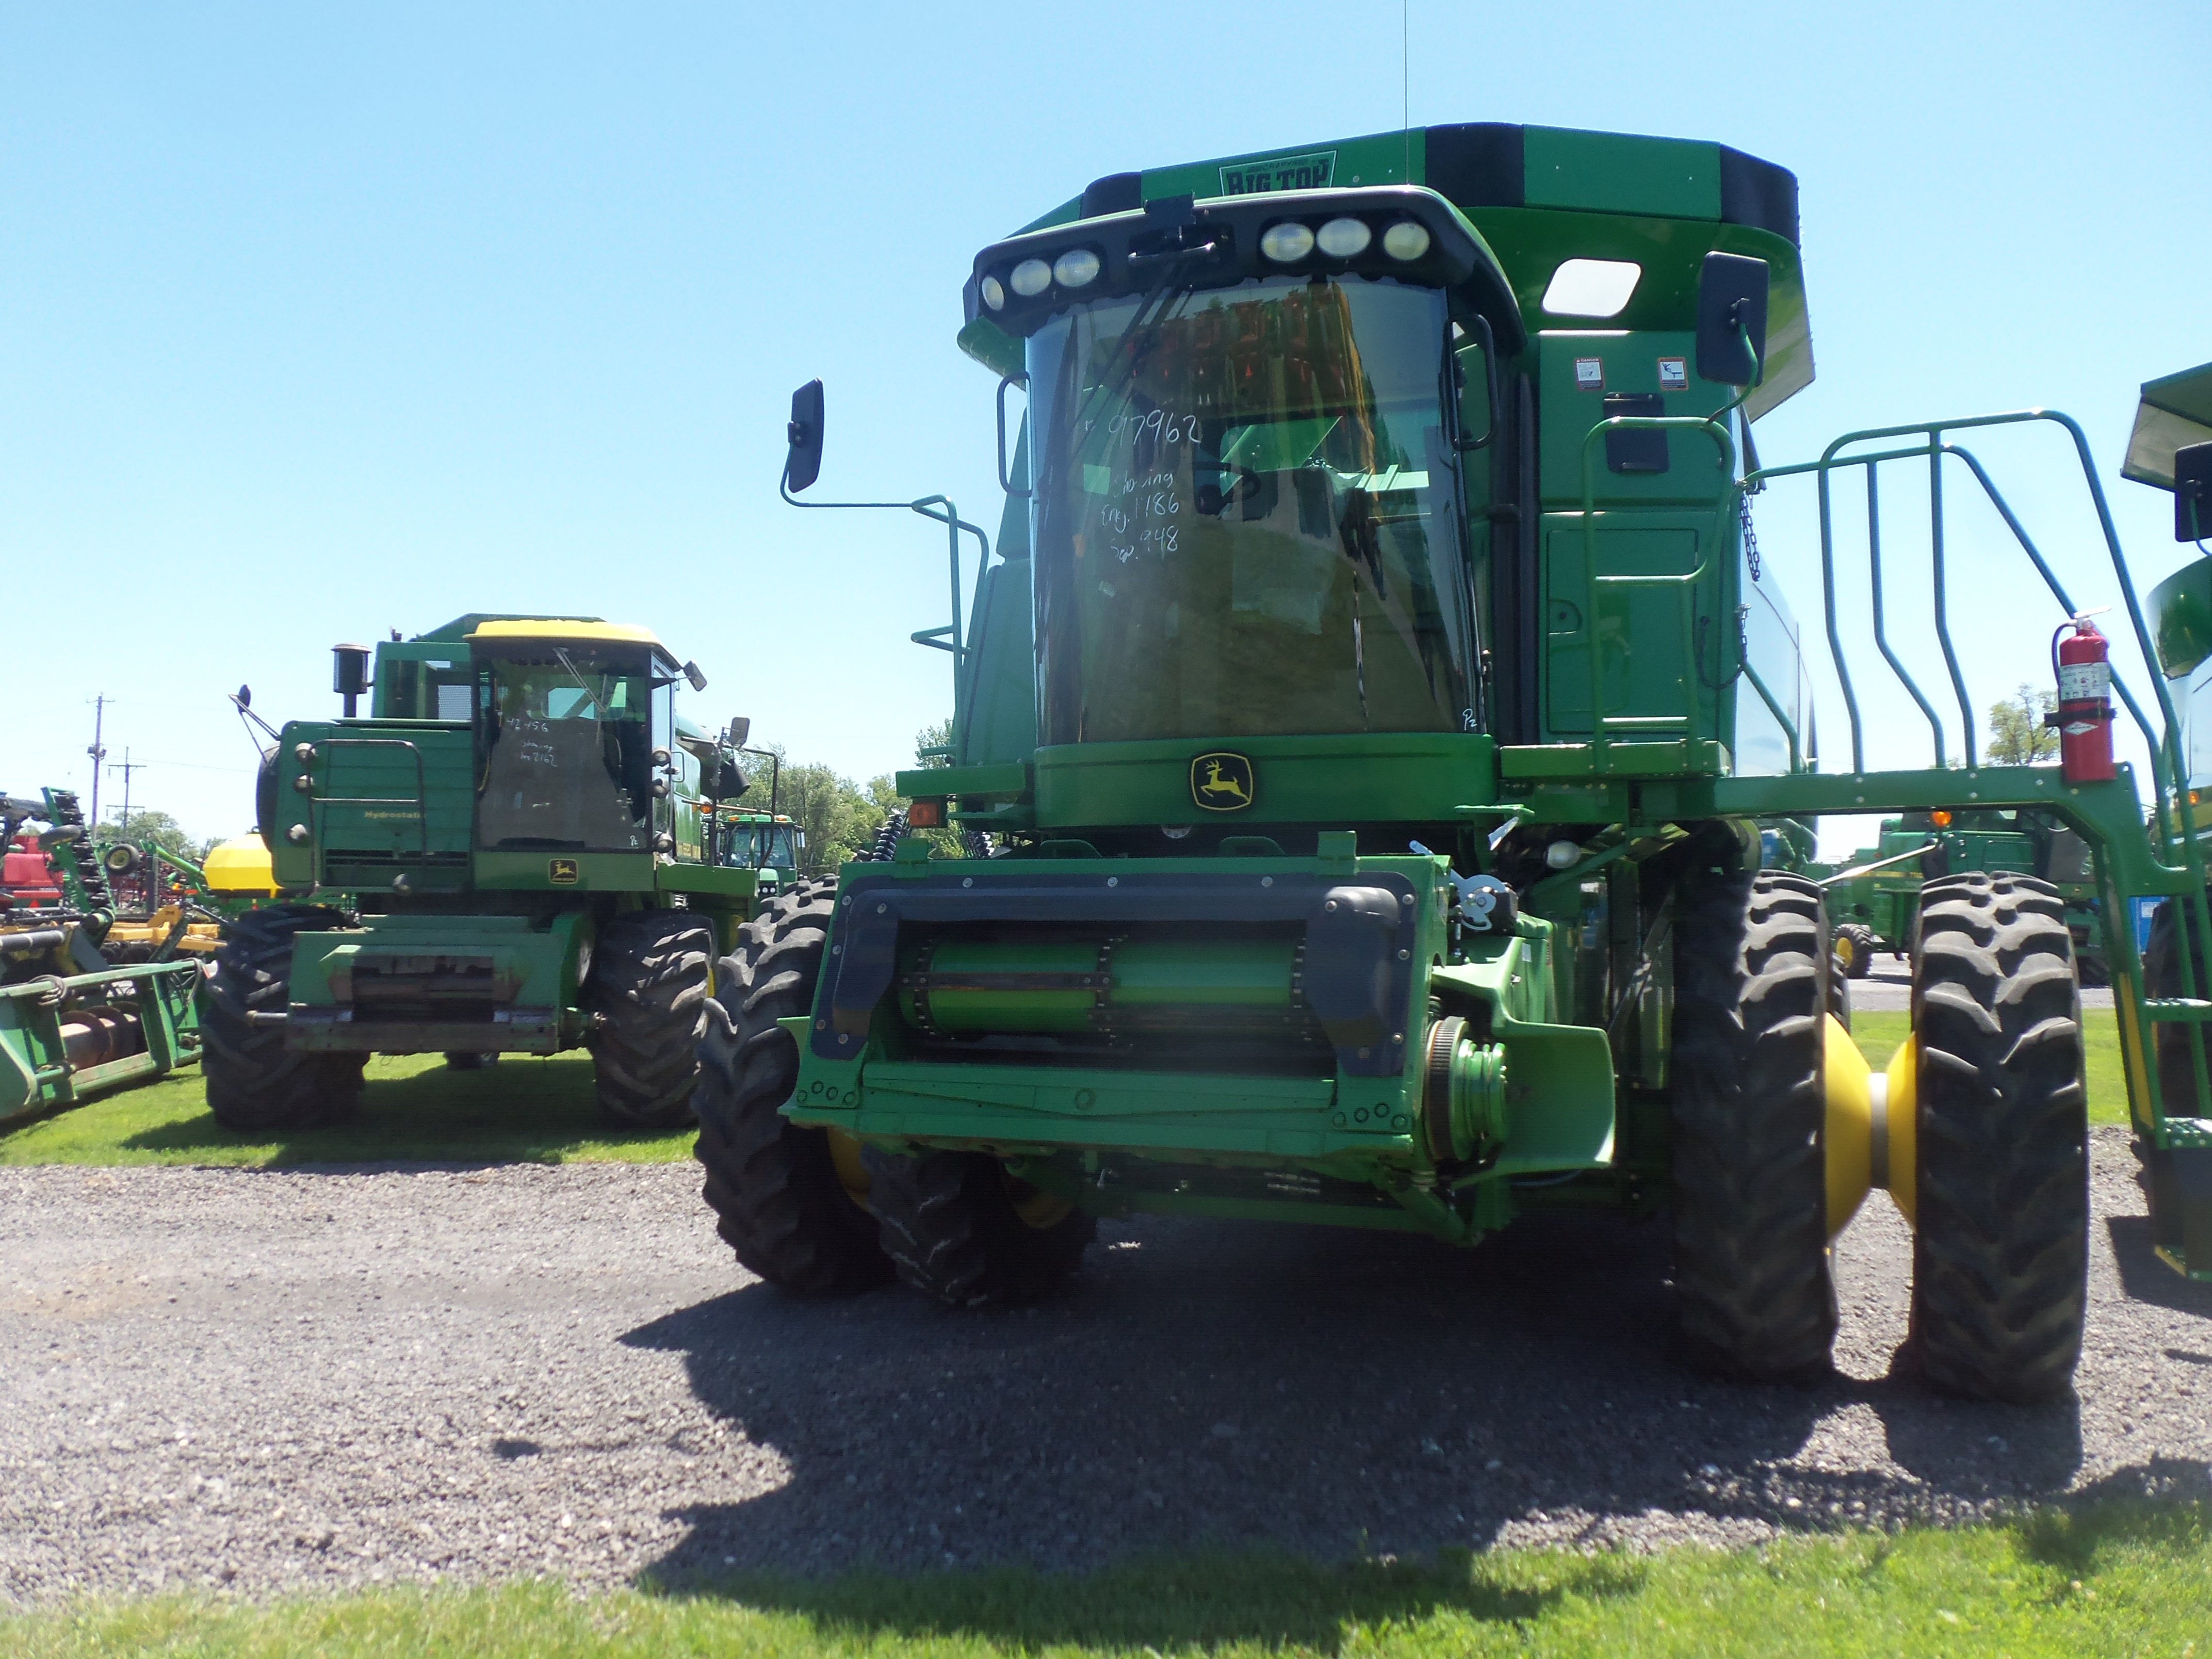 Front of JOhn  Deere 9770 STS Bullet Rotor with Turbo 6620 in background.THis shows how JOhn  Deere combines changed from 1978 to 2007